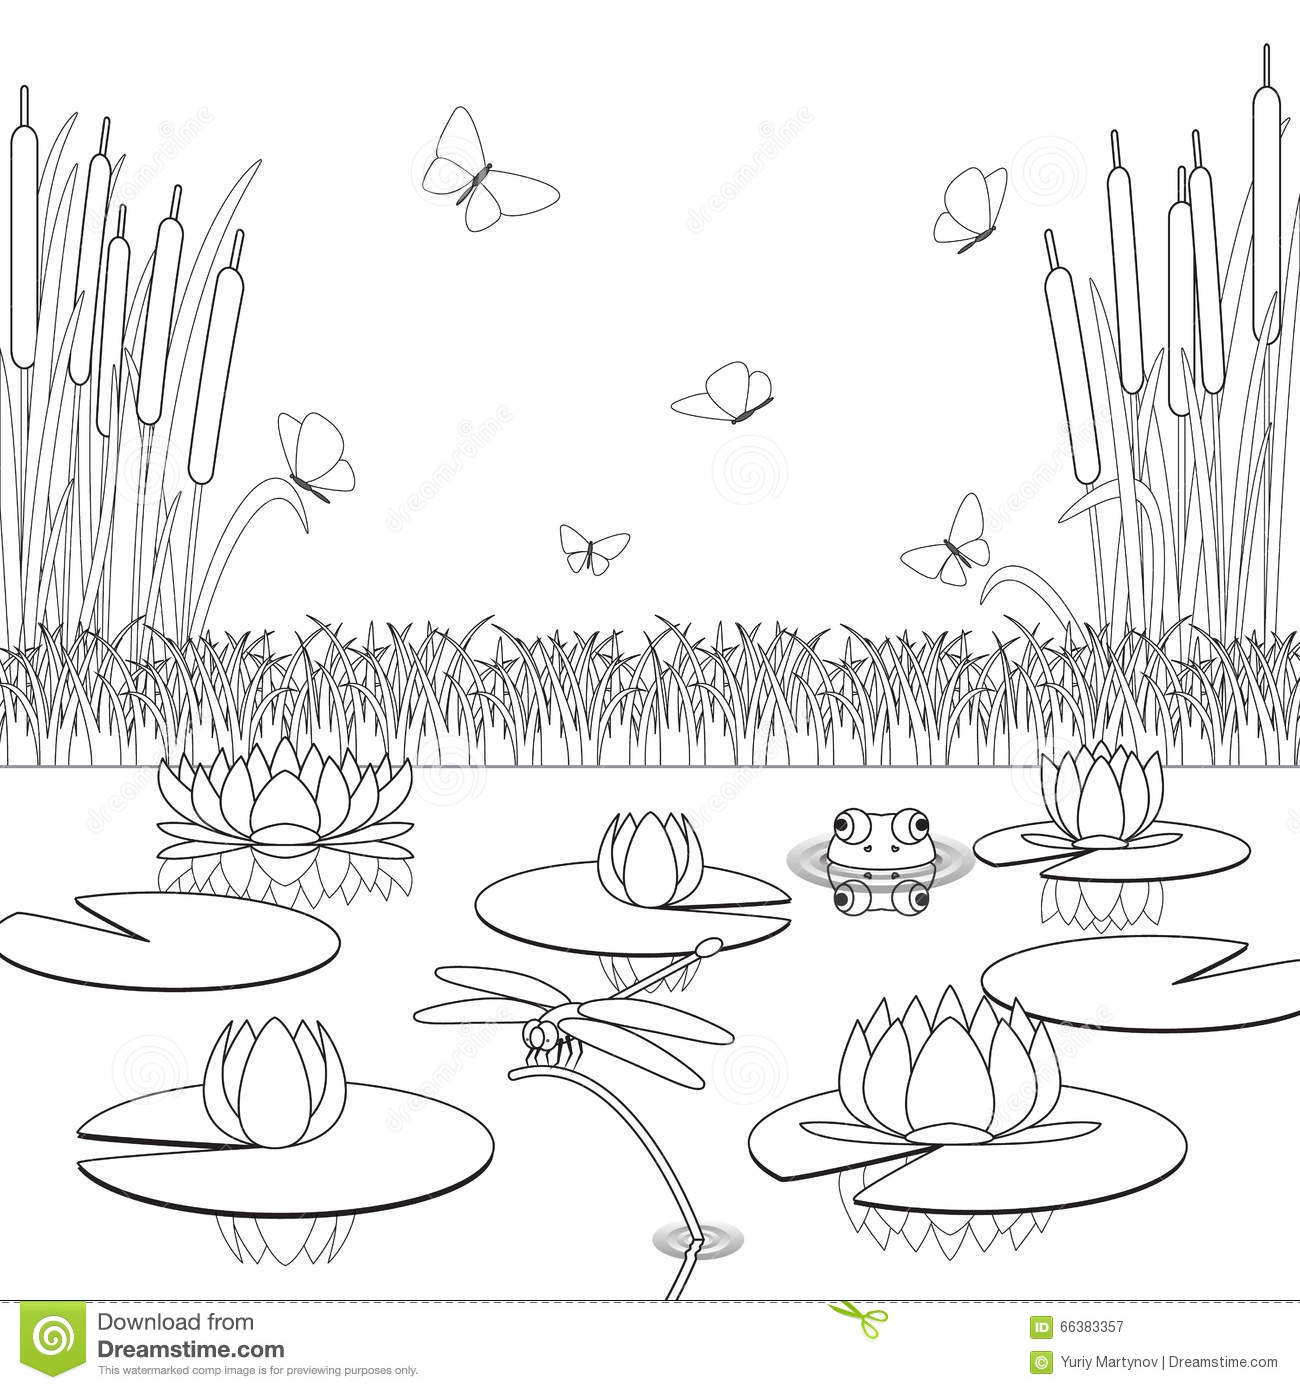 Coloring Page With Pond Inhabitants And Plants Stock